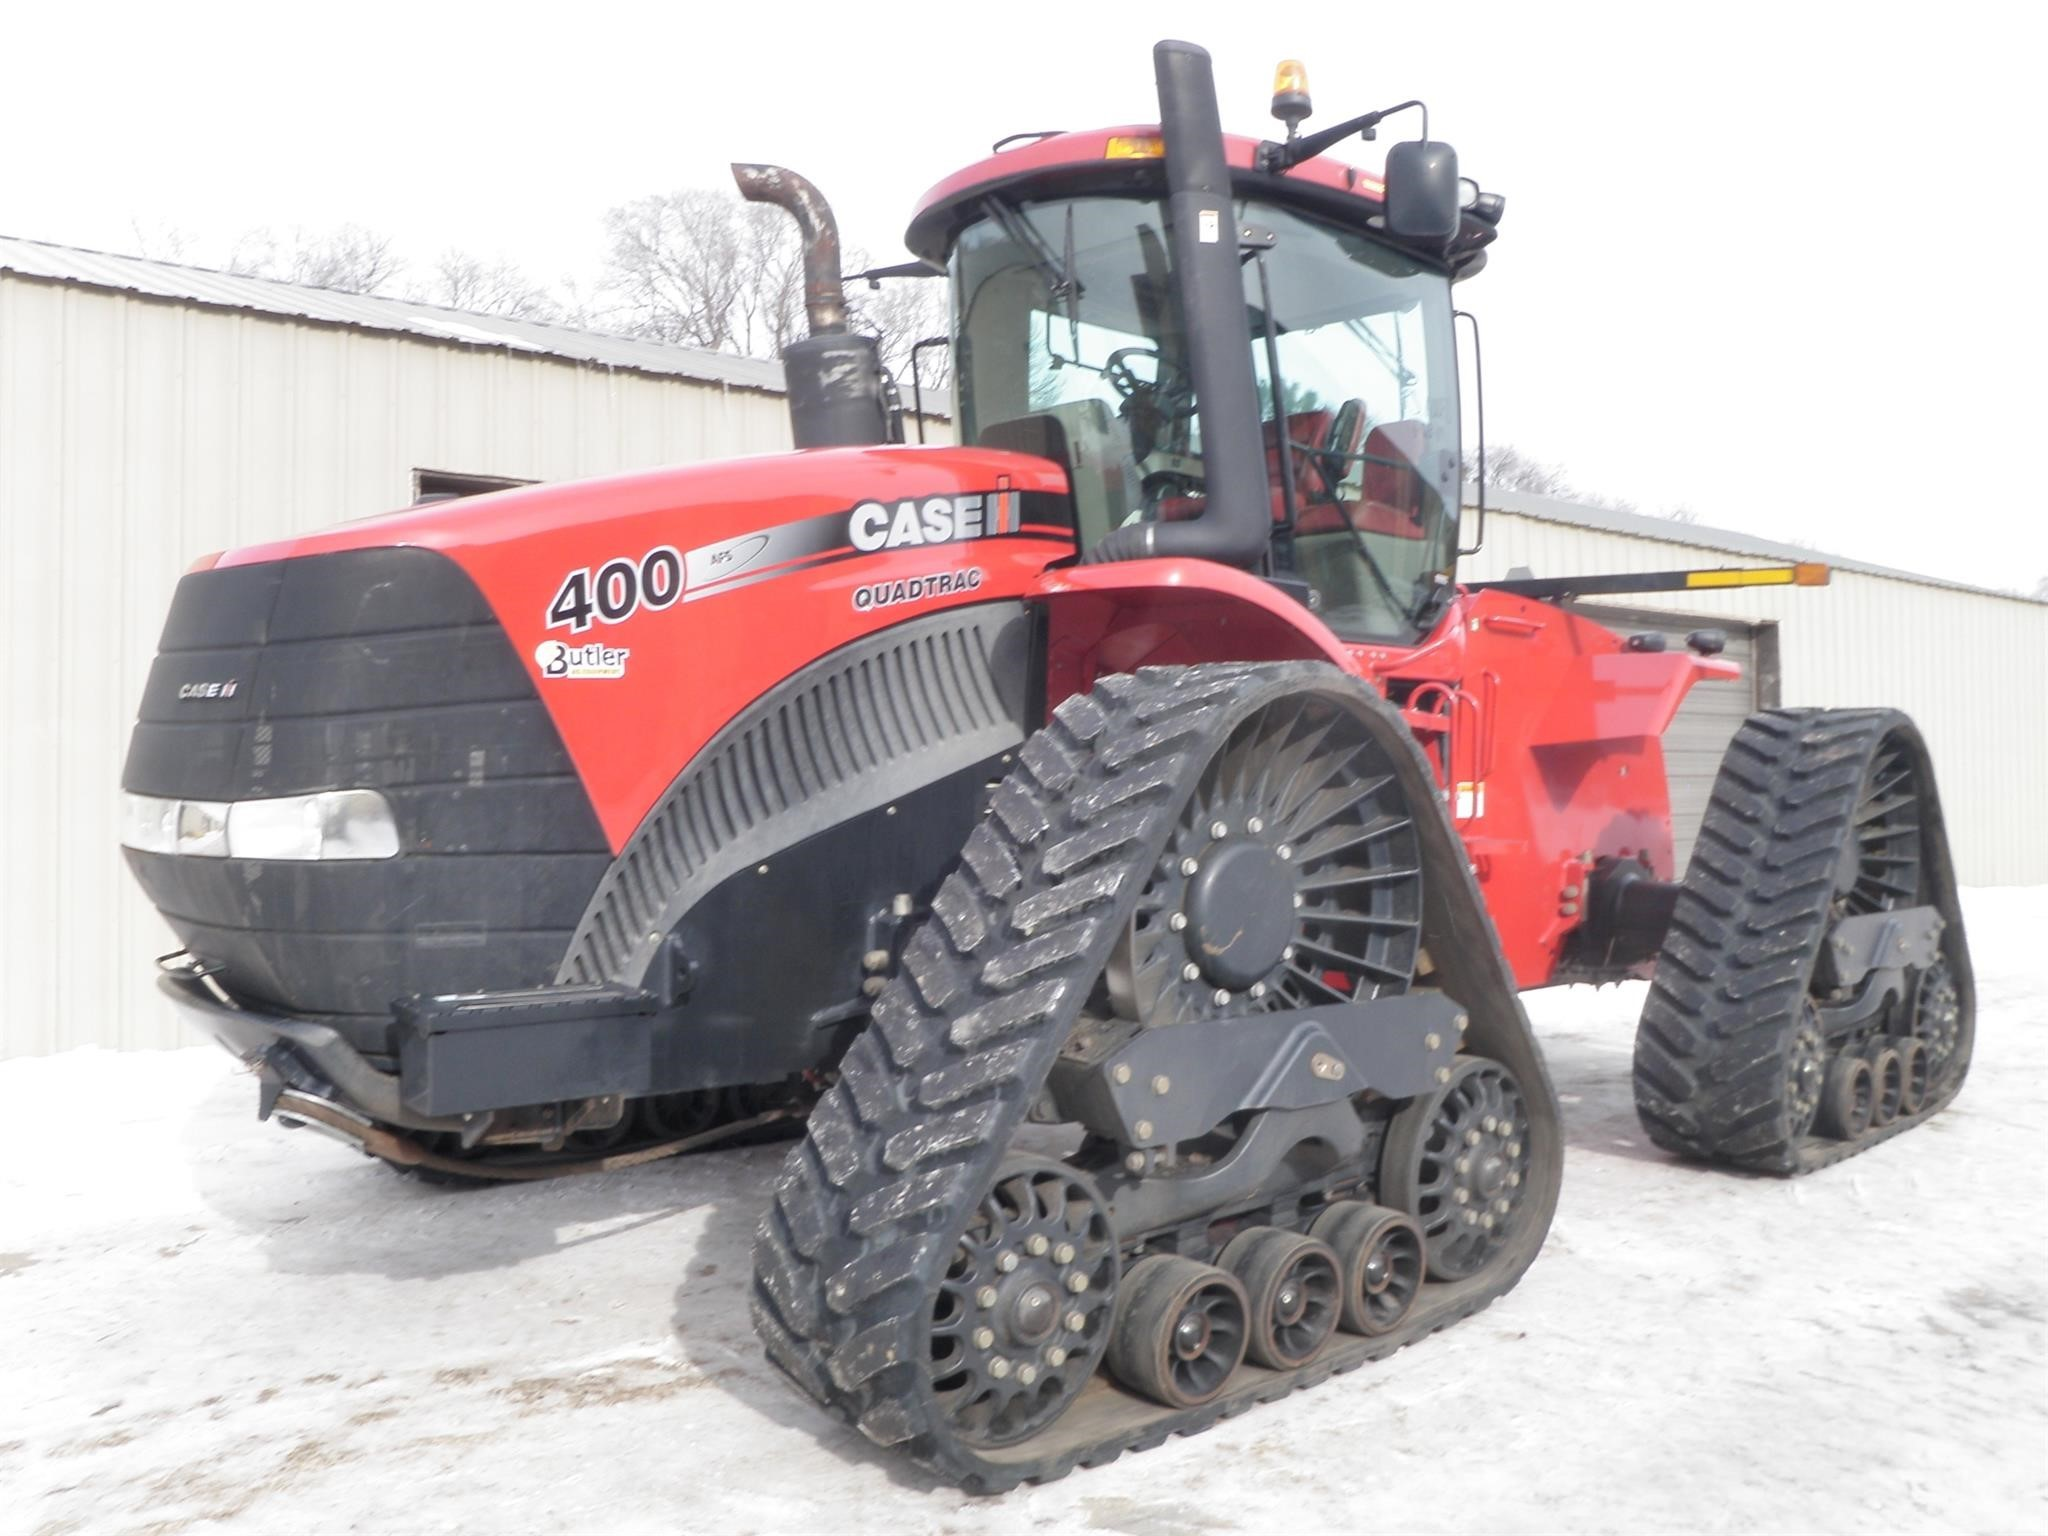 2013 Case IH Steiger 400 RowTrac Tractor